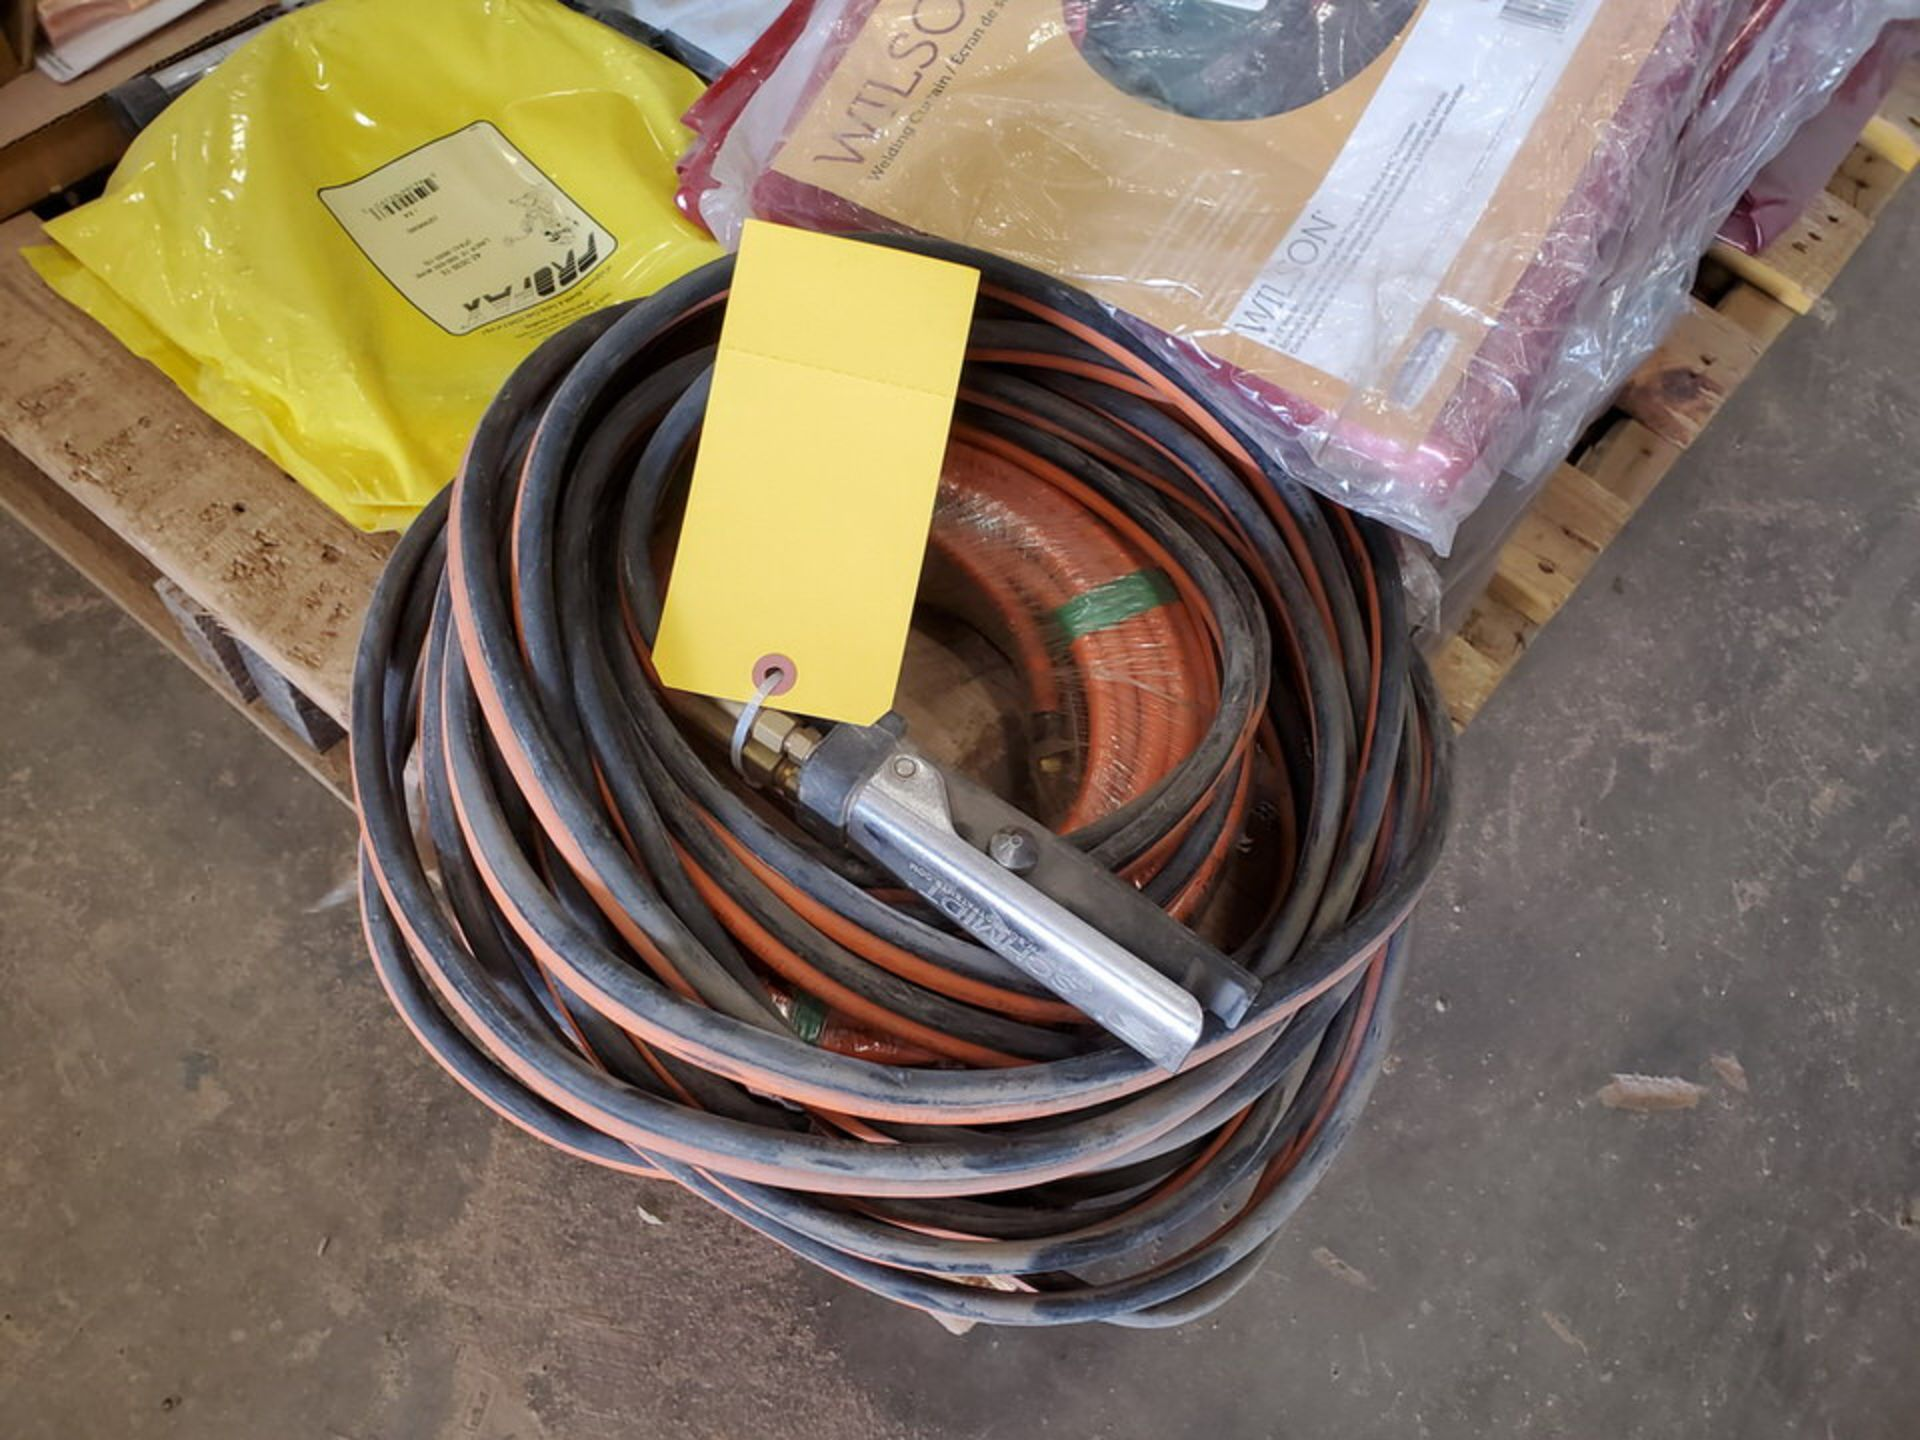 Assorted Welding Material To Include But Not Limited To: Electrode Holders, Gloves, Hoses, Rods, - Image 11 of 12